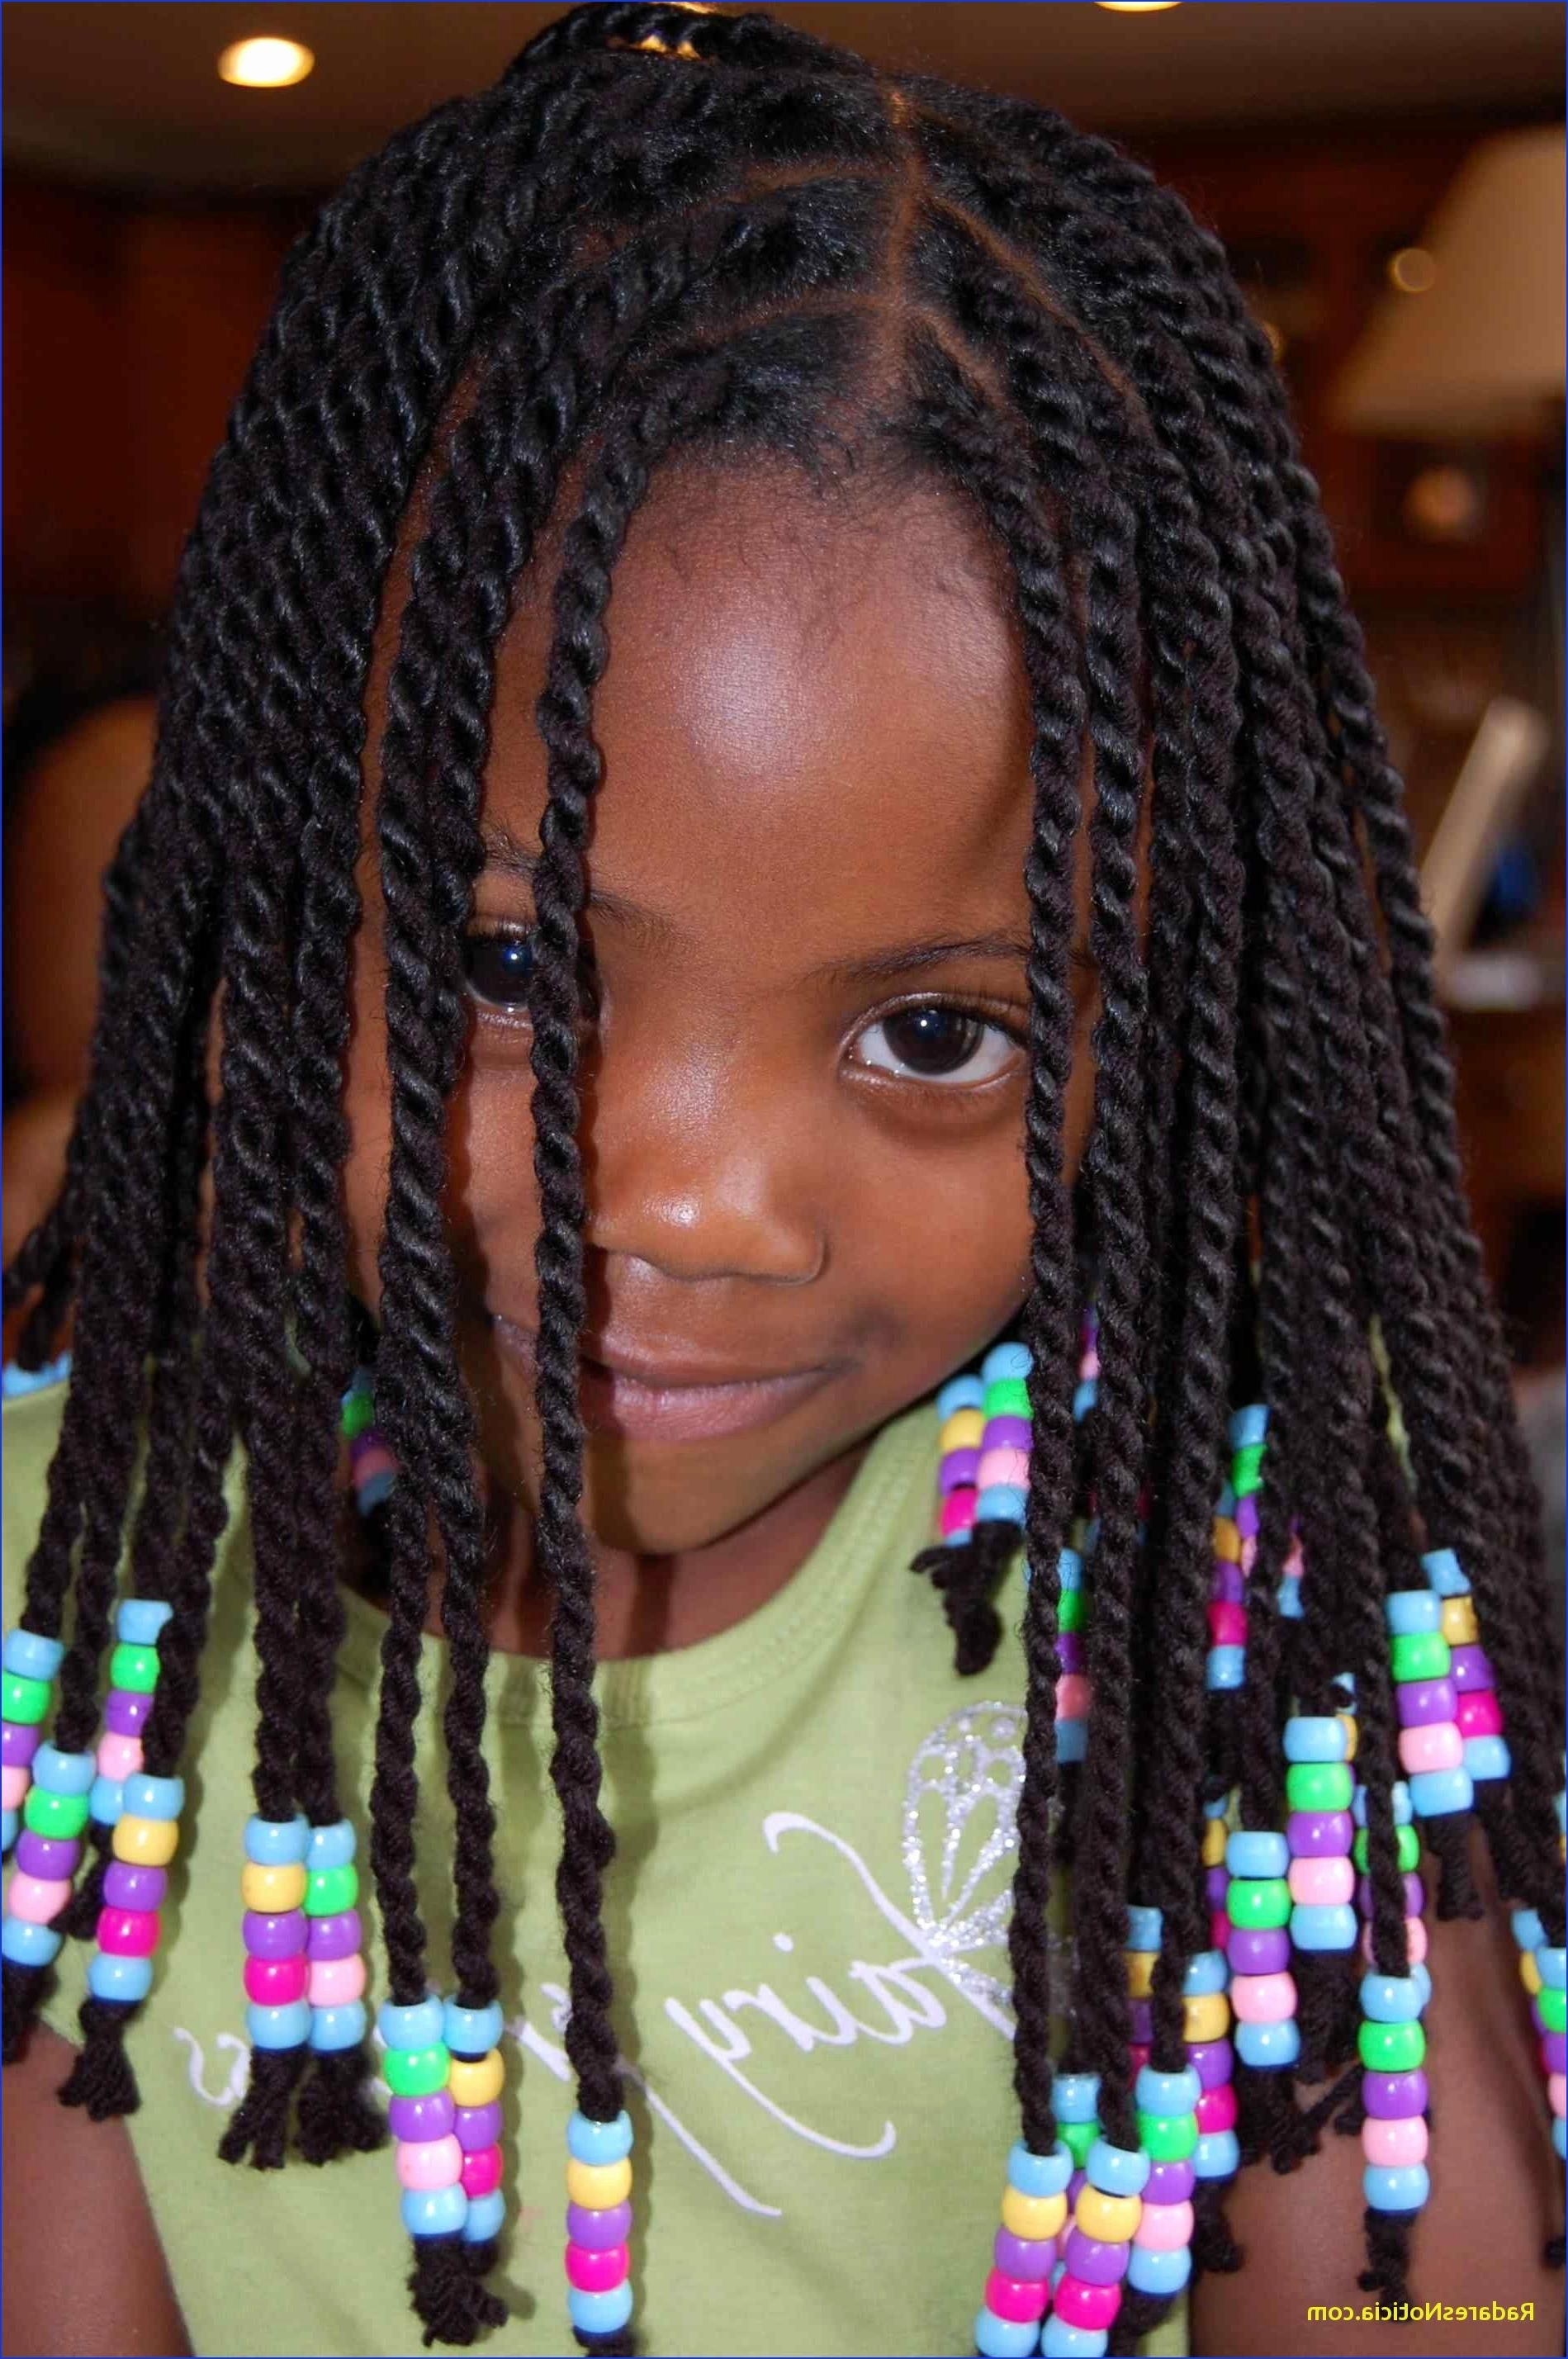 Widely Used Long Braided Ponytail Hairstyles Within Braided Ponytail Hairstyles For Black Hair Fresh Black Children (View 20 of 20)